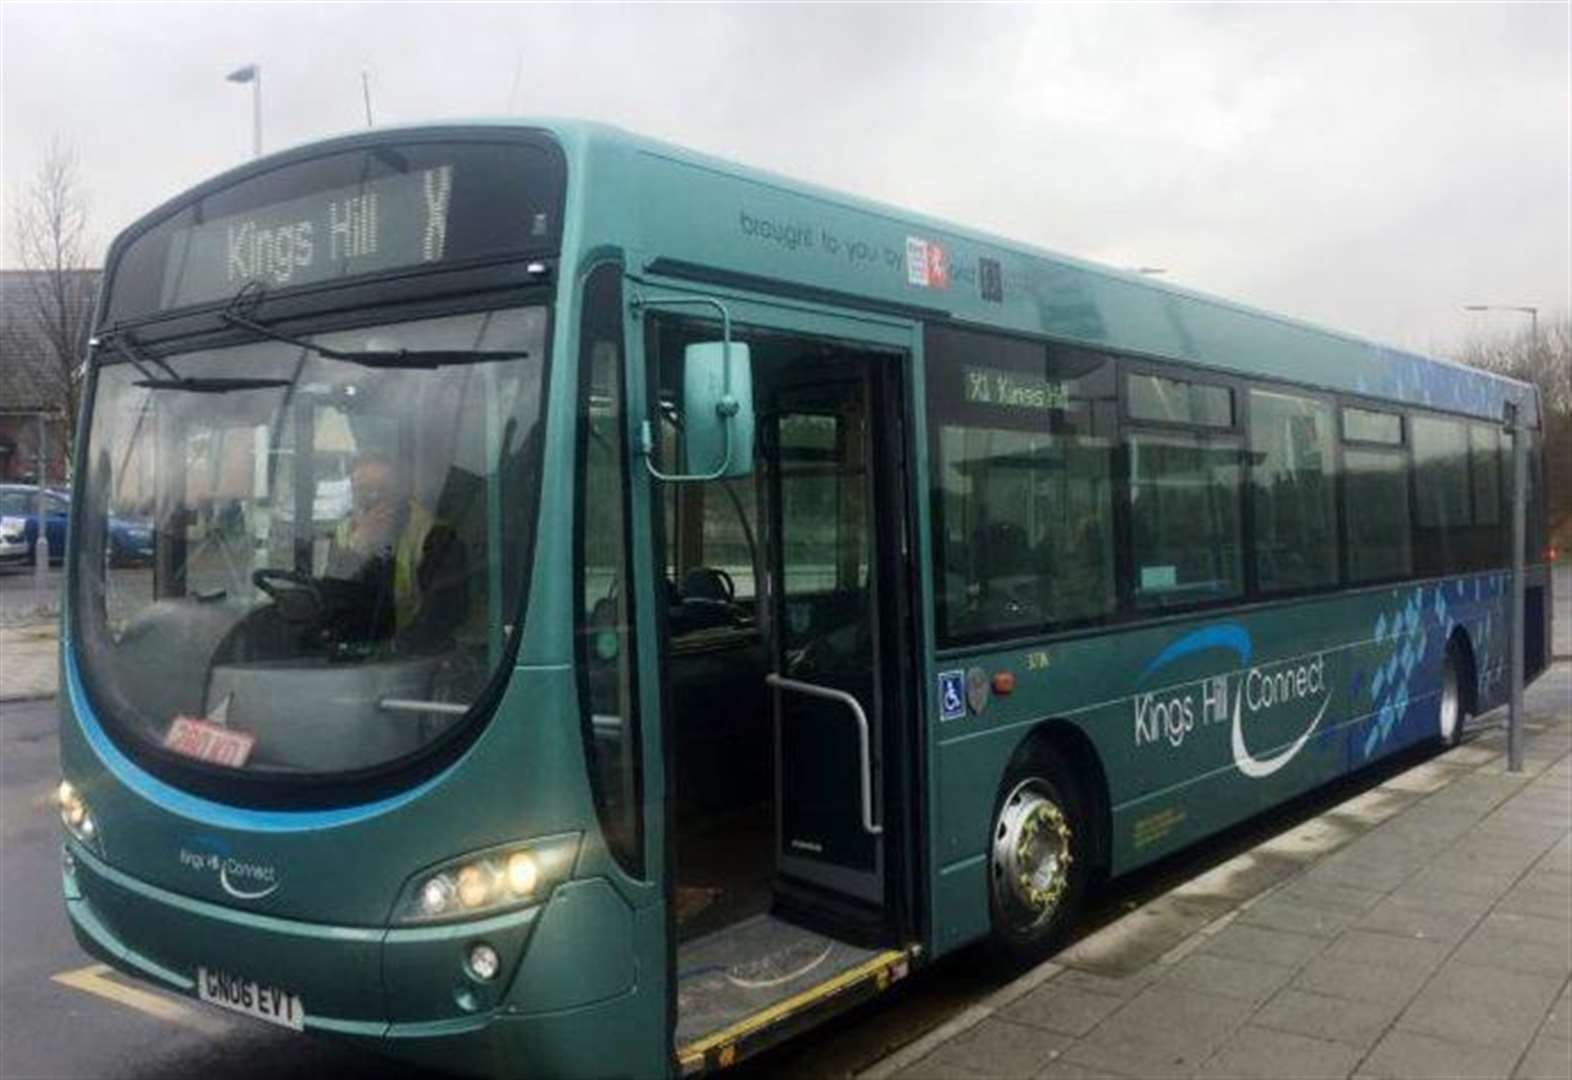 Rural bus service cuts back on agenda